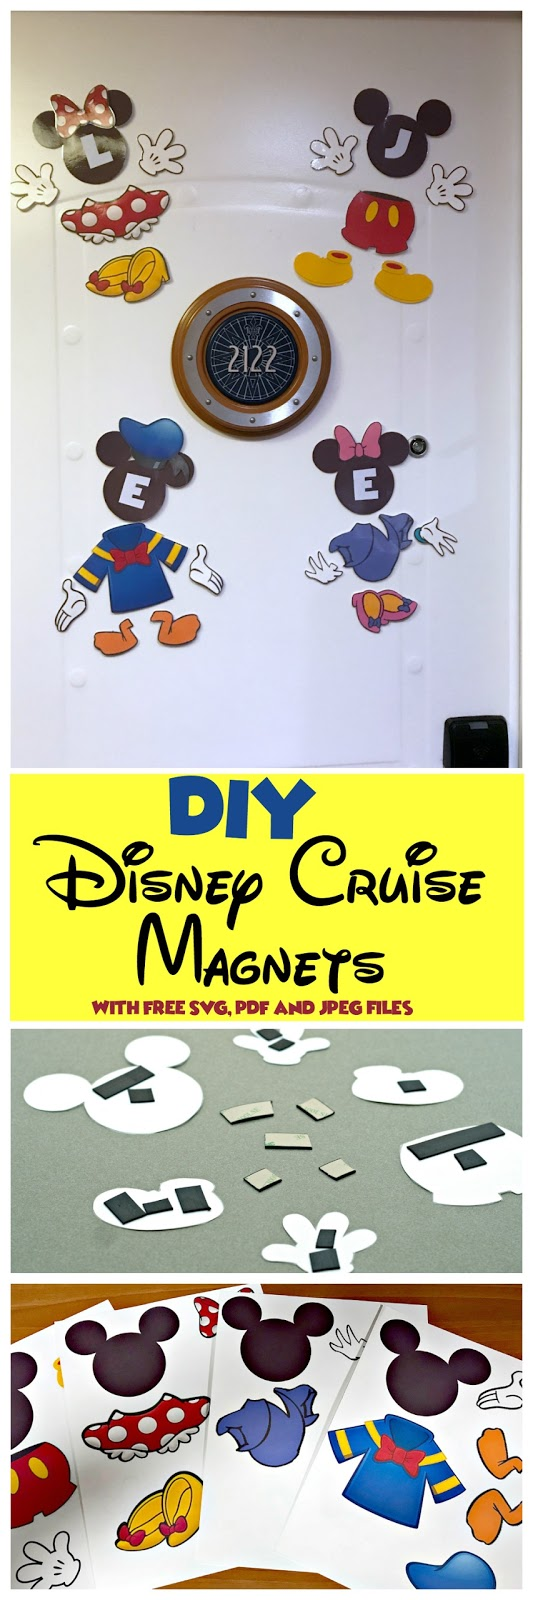 How to Make Disney Cruise Ship Magnets on a Budget, How to Make Disney Cruise Magnets, Easy Disney Cruise magnets, DIY Disney Cruise Magnets, Printable SVG Disney Cruise Magnets Free, Free Printable Disney Cruise Magnets, Mickey Mouse parts, Minnie Mouse parts, Daisy Duck parts, Donald parts